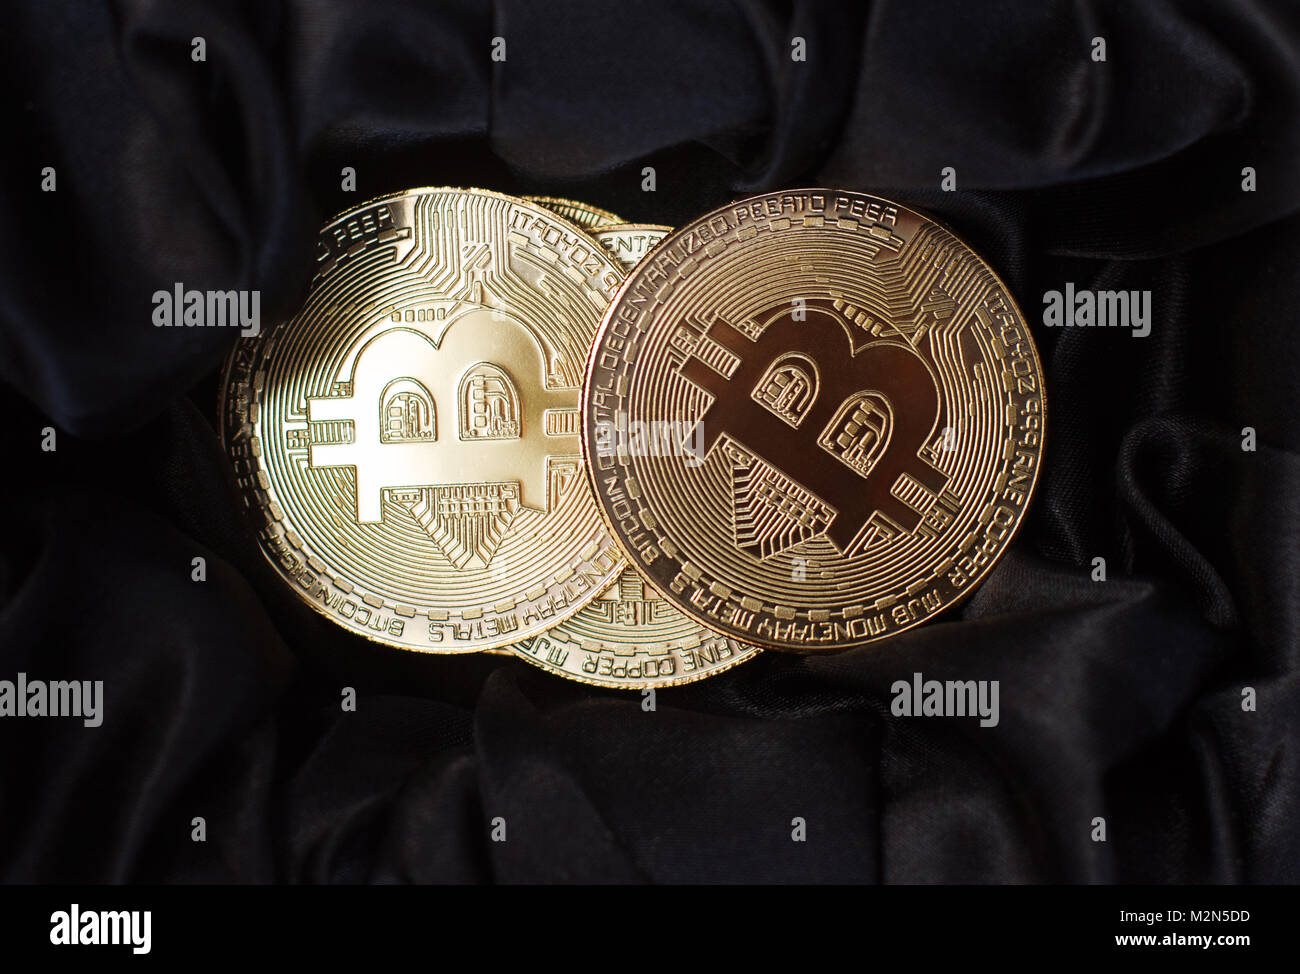 horizontal top view closeup of bitcoin golden metallic coins on black velvet background - Stock Image